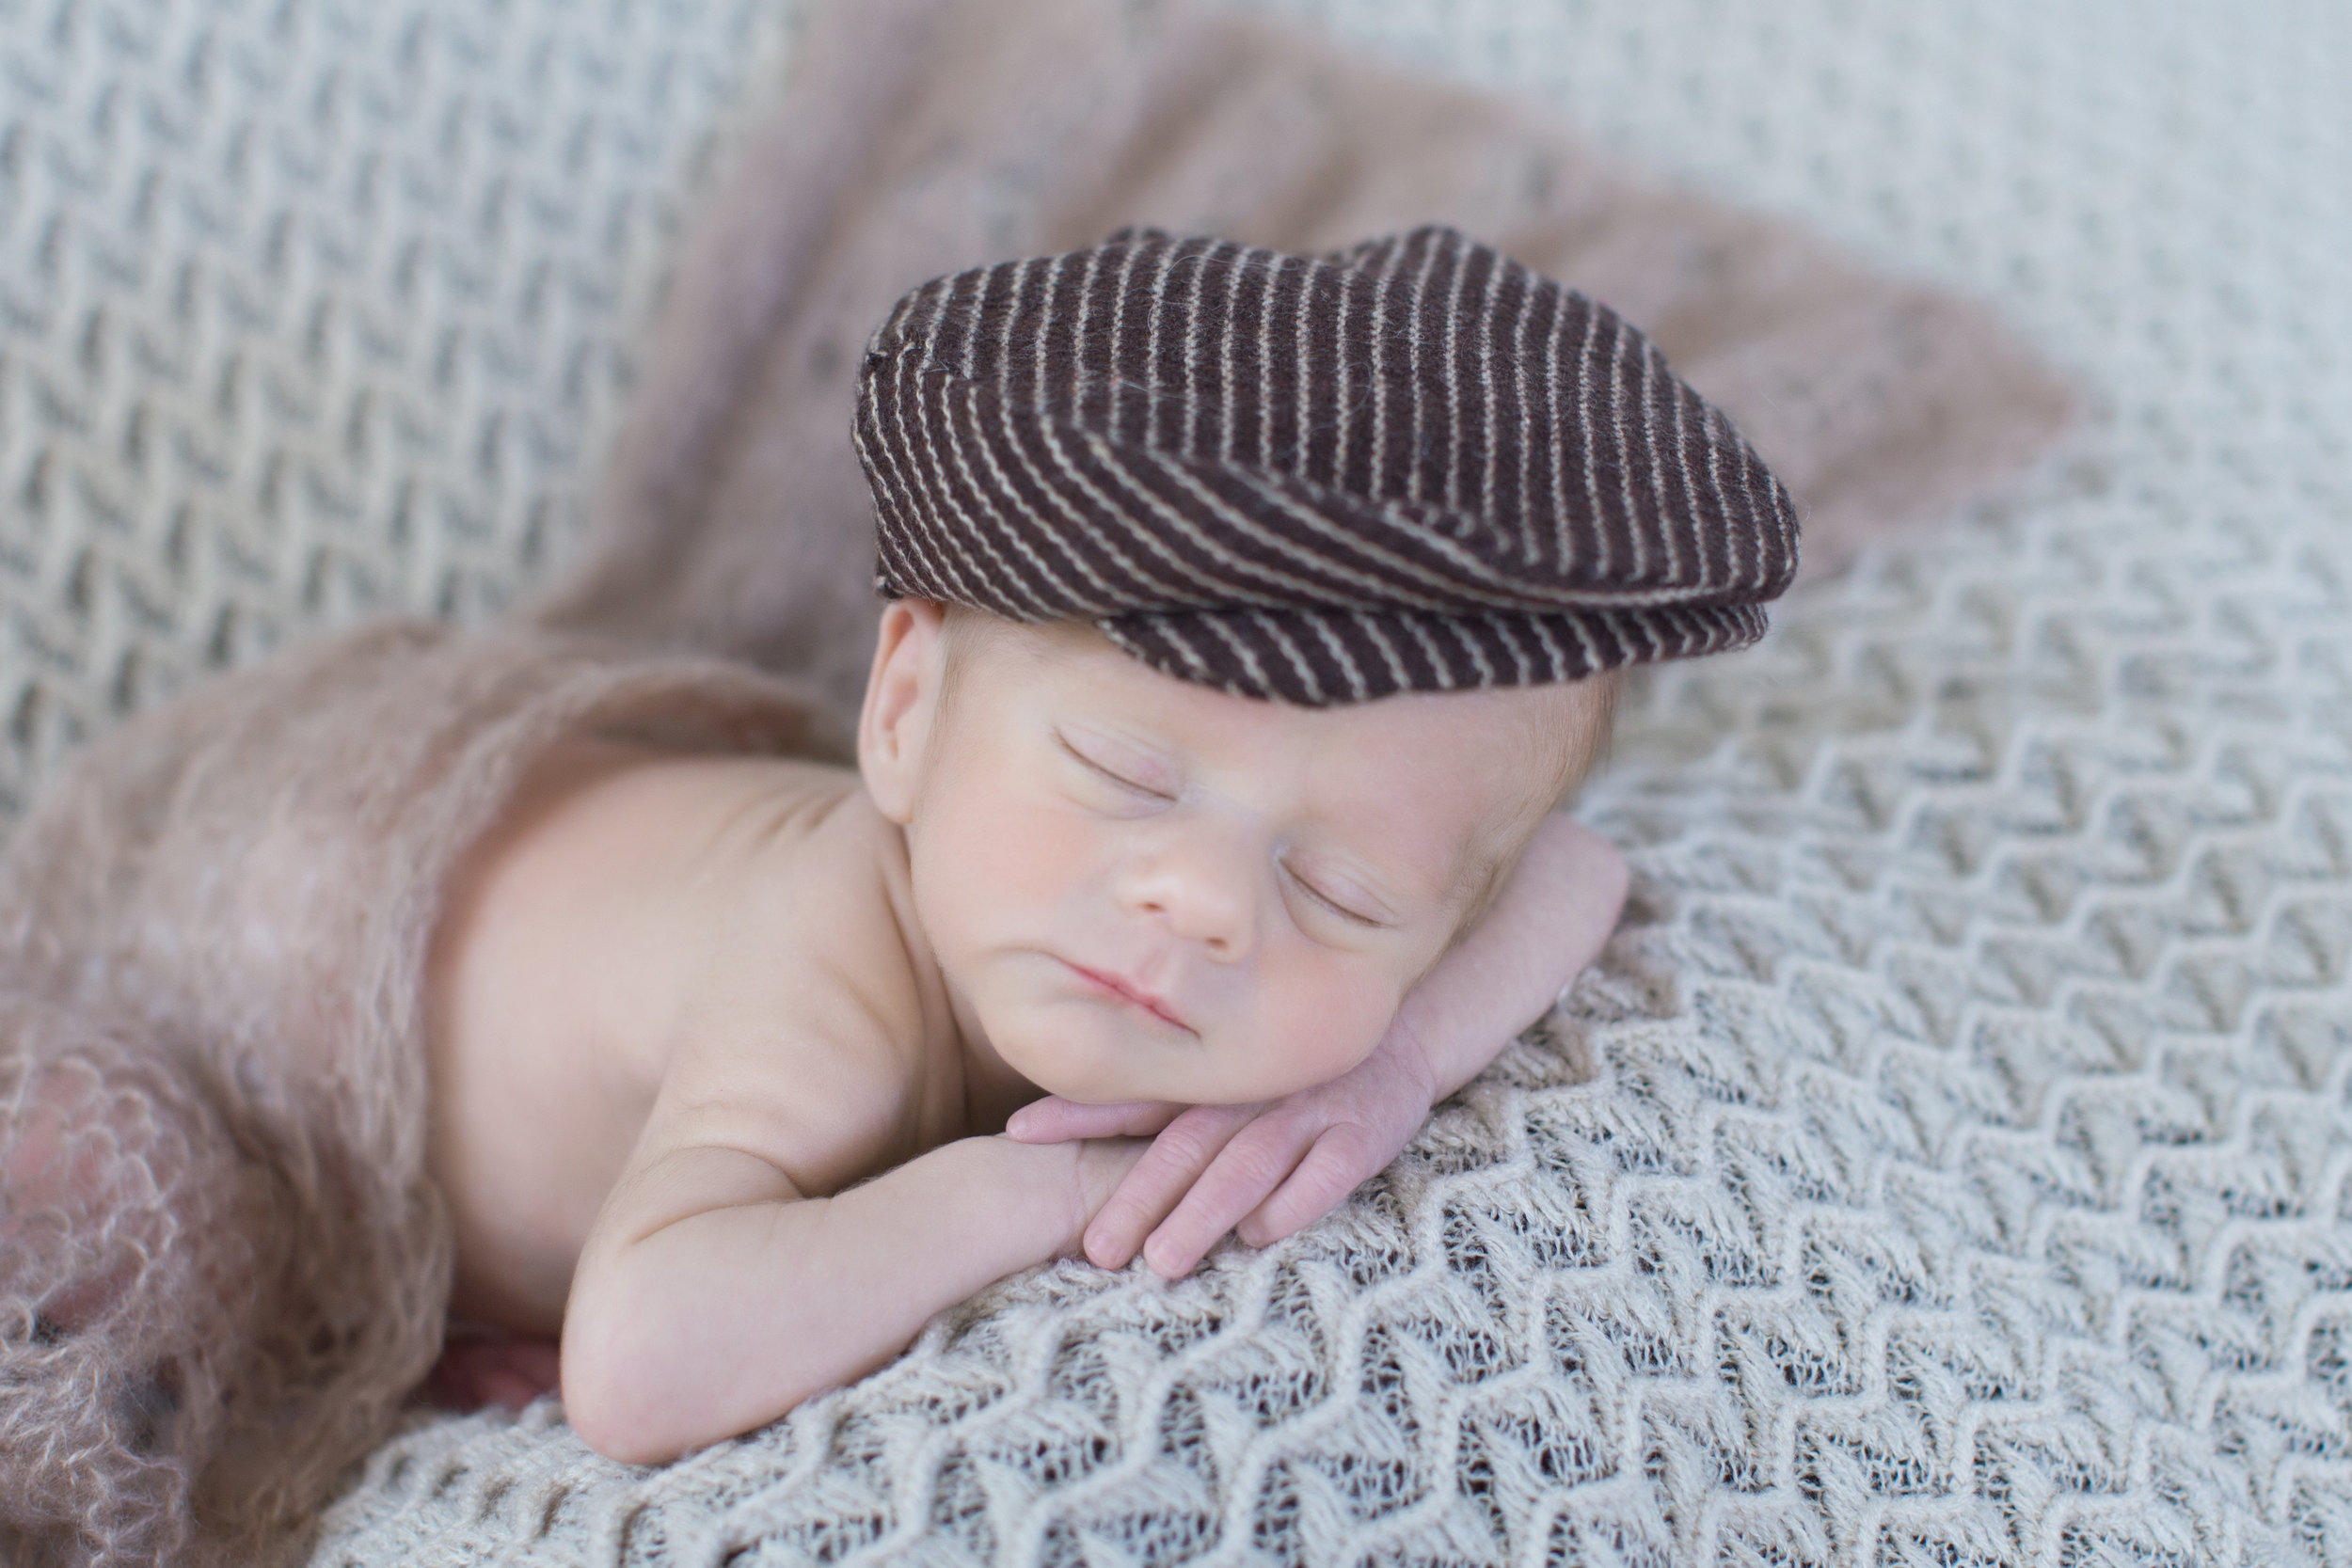 Newborn baby sleeping soundly and wearing a cute hat. Captured by Milashka photography.